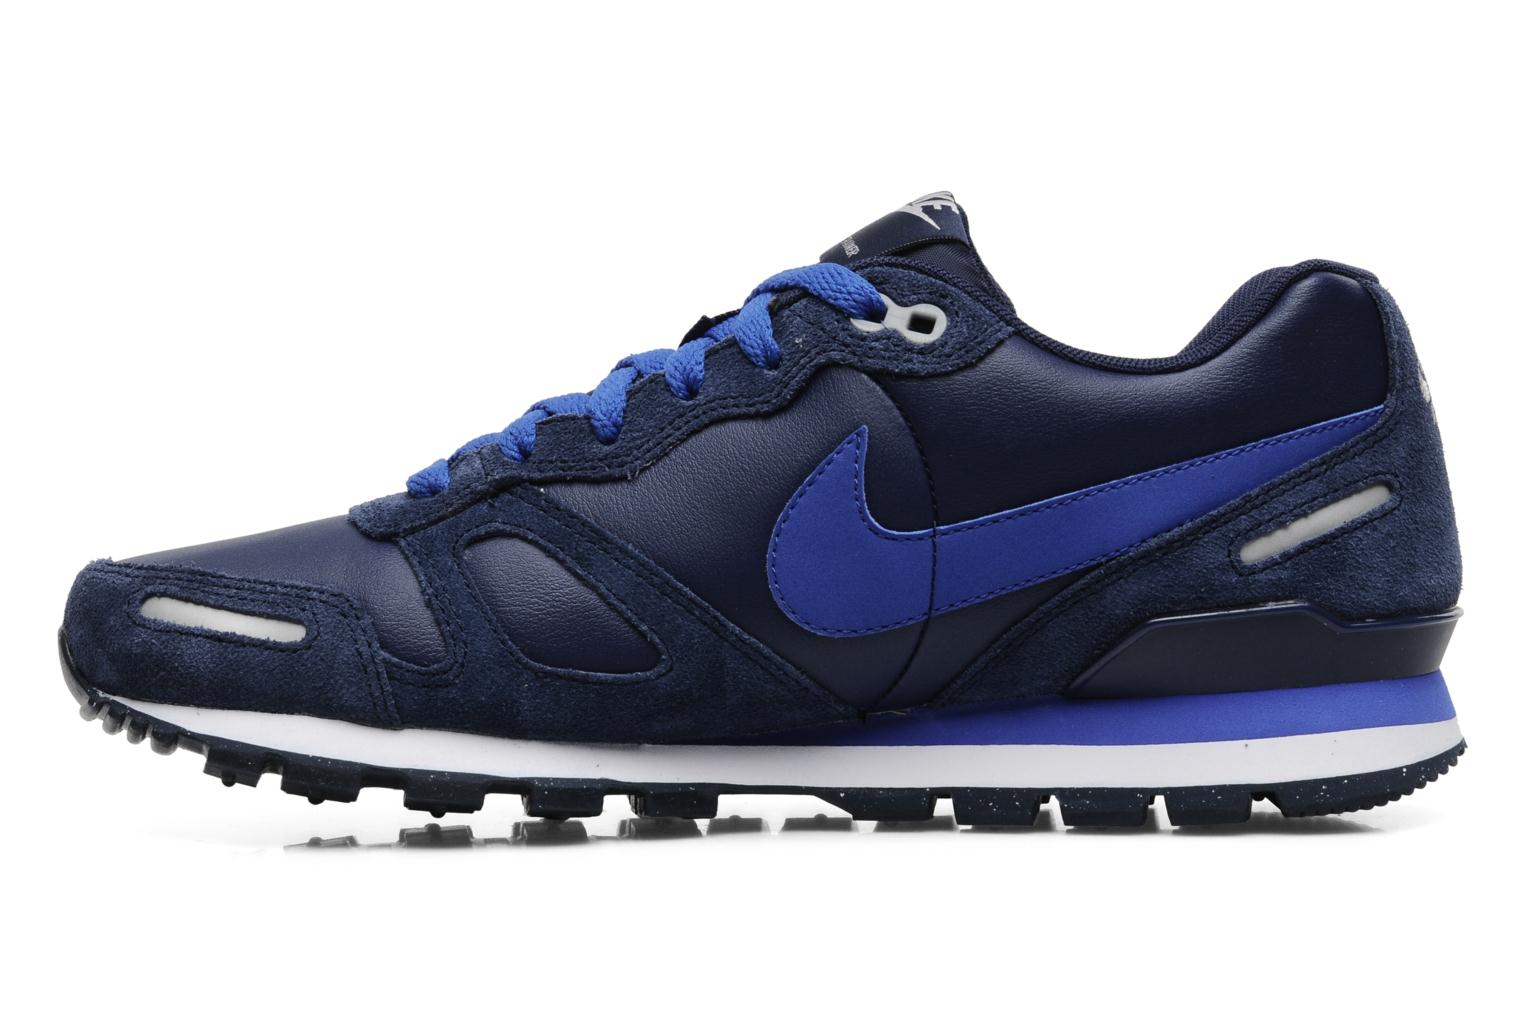 nike air waffle trainer leather trainers in blue at 151643. Black Bedroom Furniture Sets. Home Design Ideas